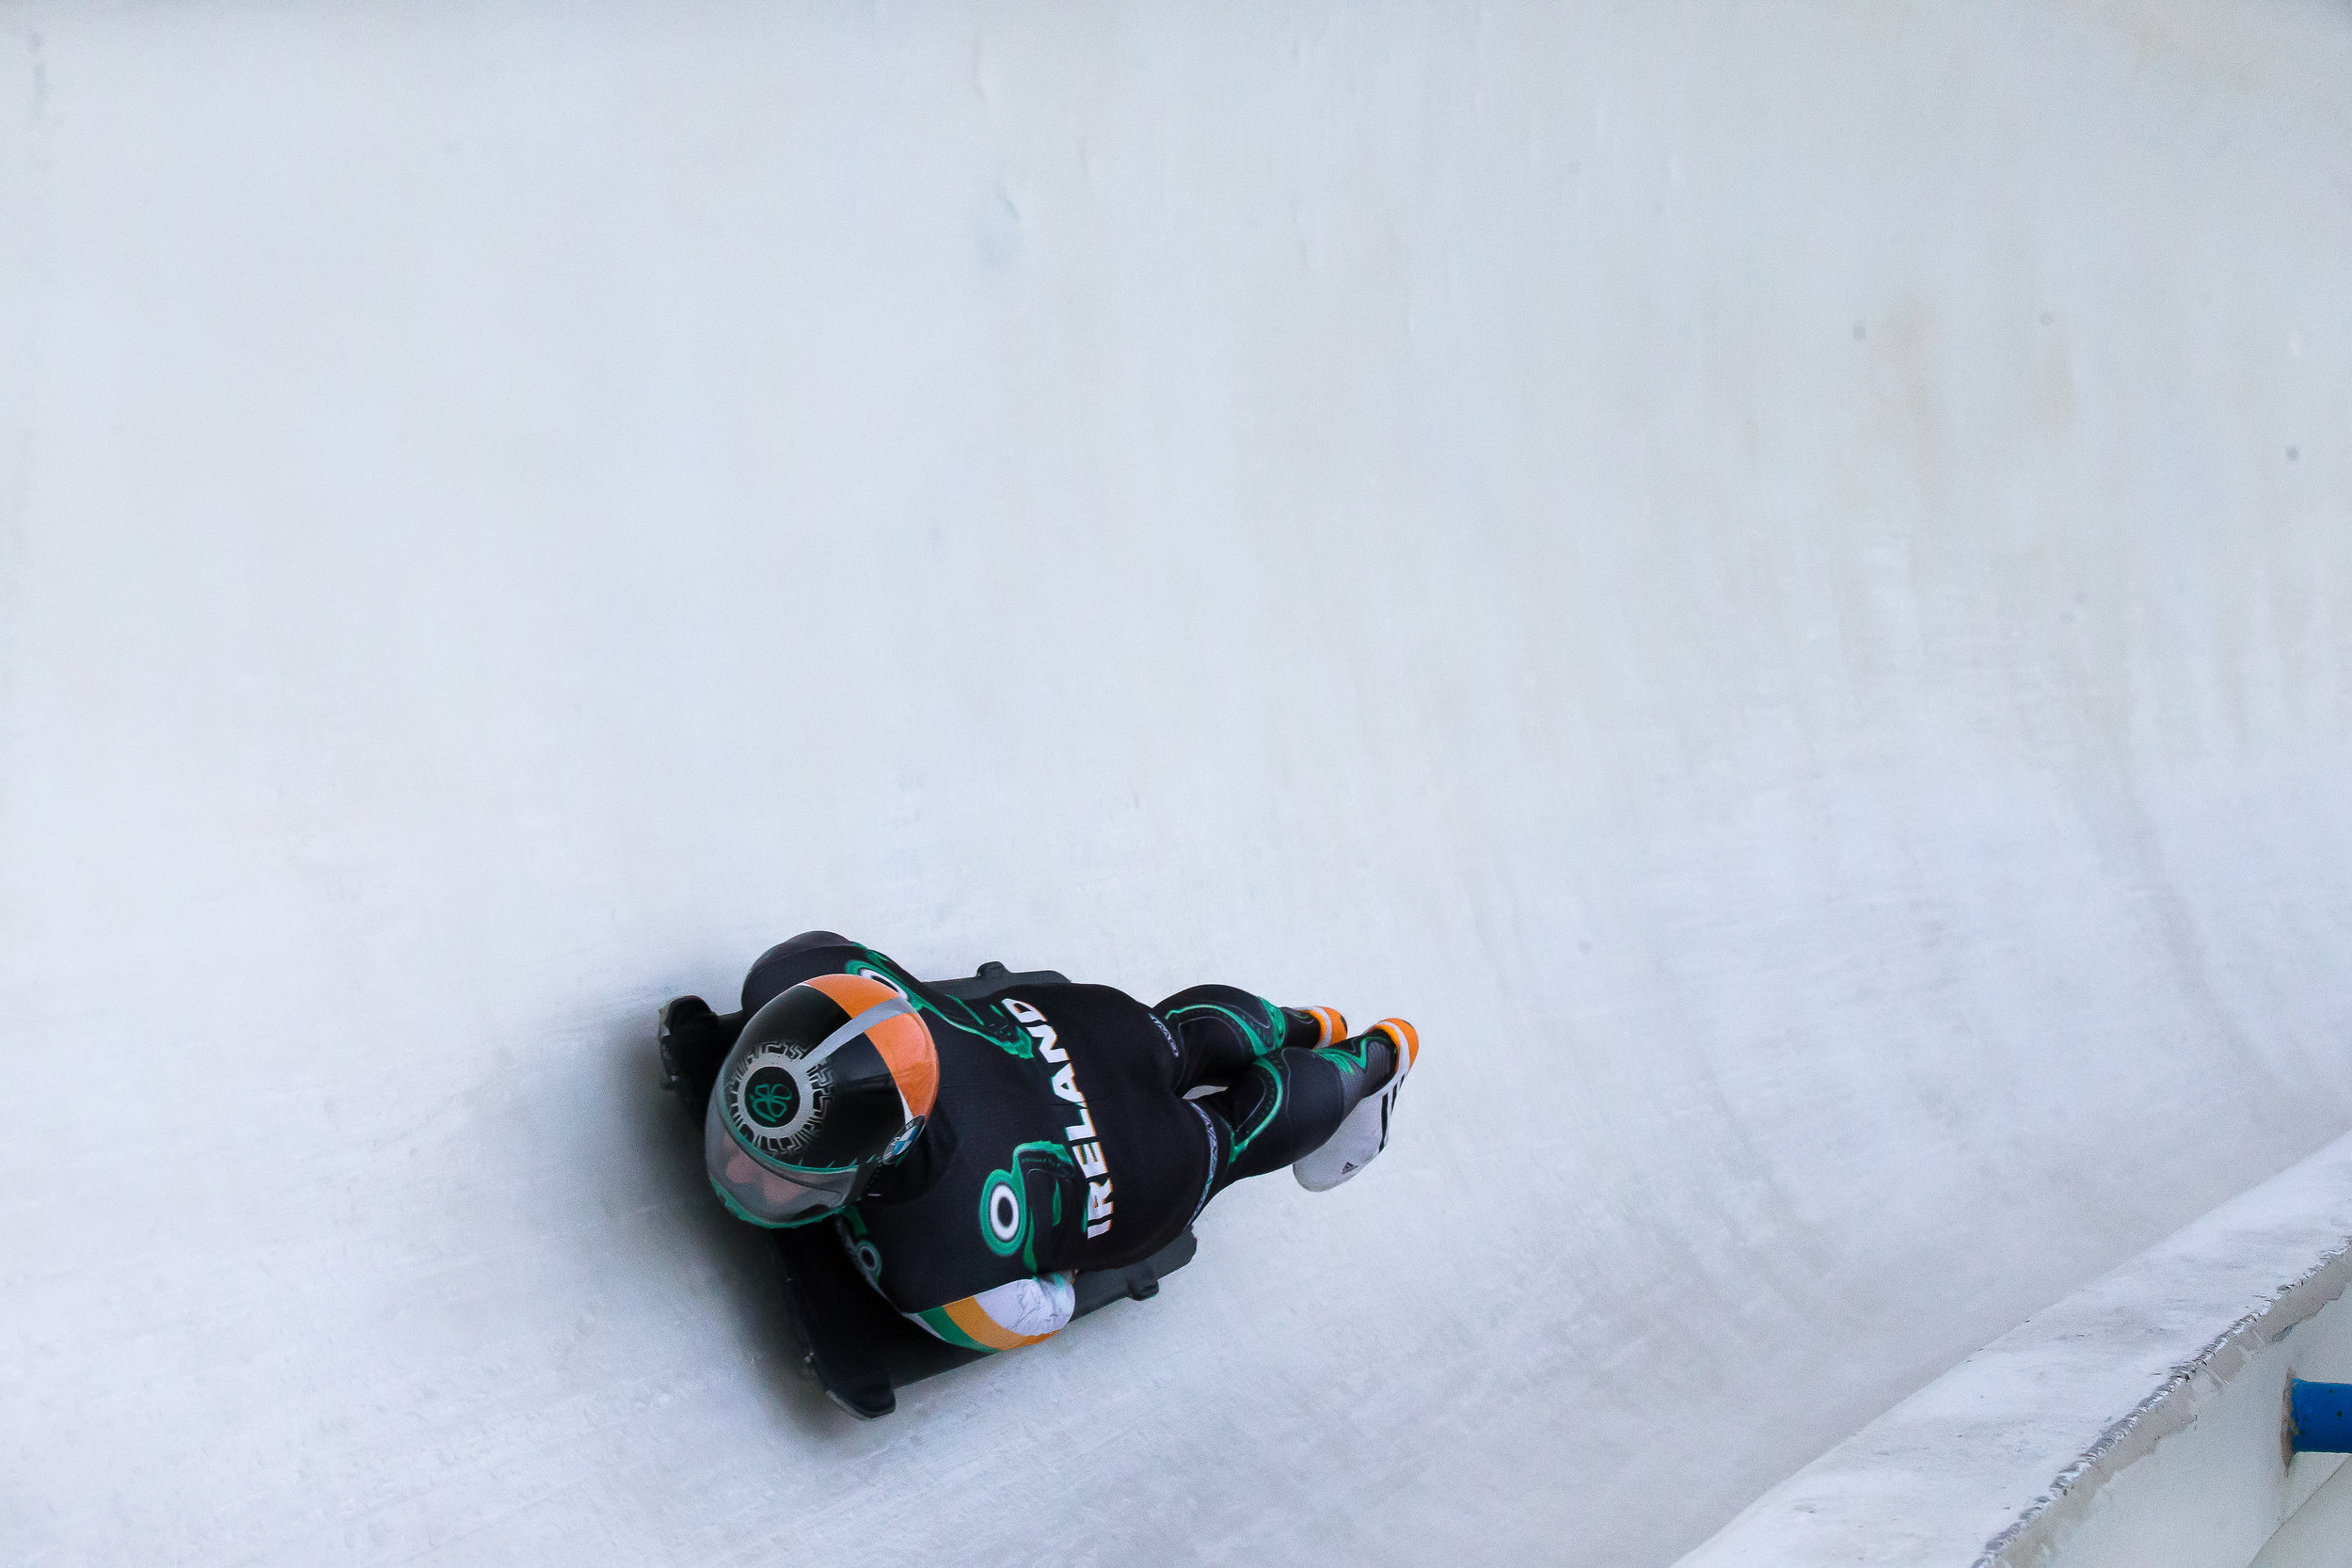 20190111 NAC Race 8 Skeleton 0085.jpg